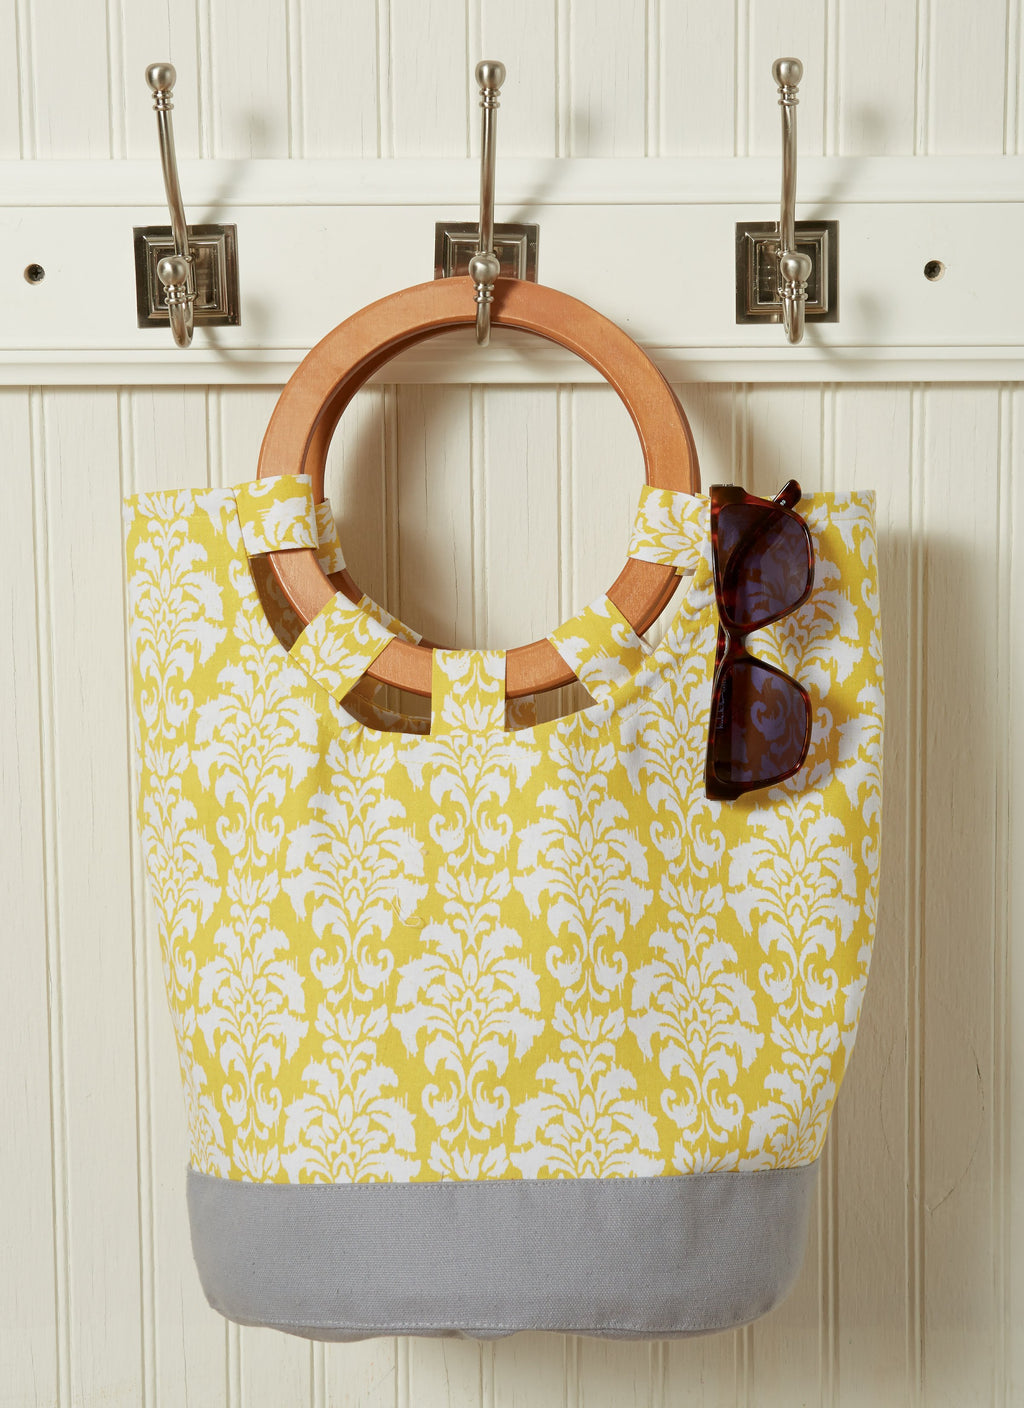 Practical summer tote bag pattern 7611